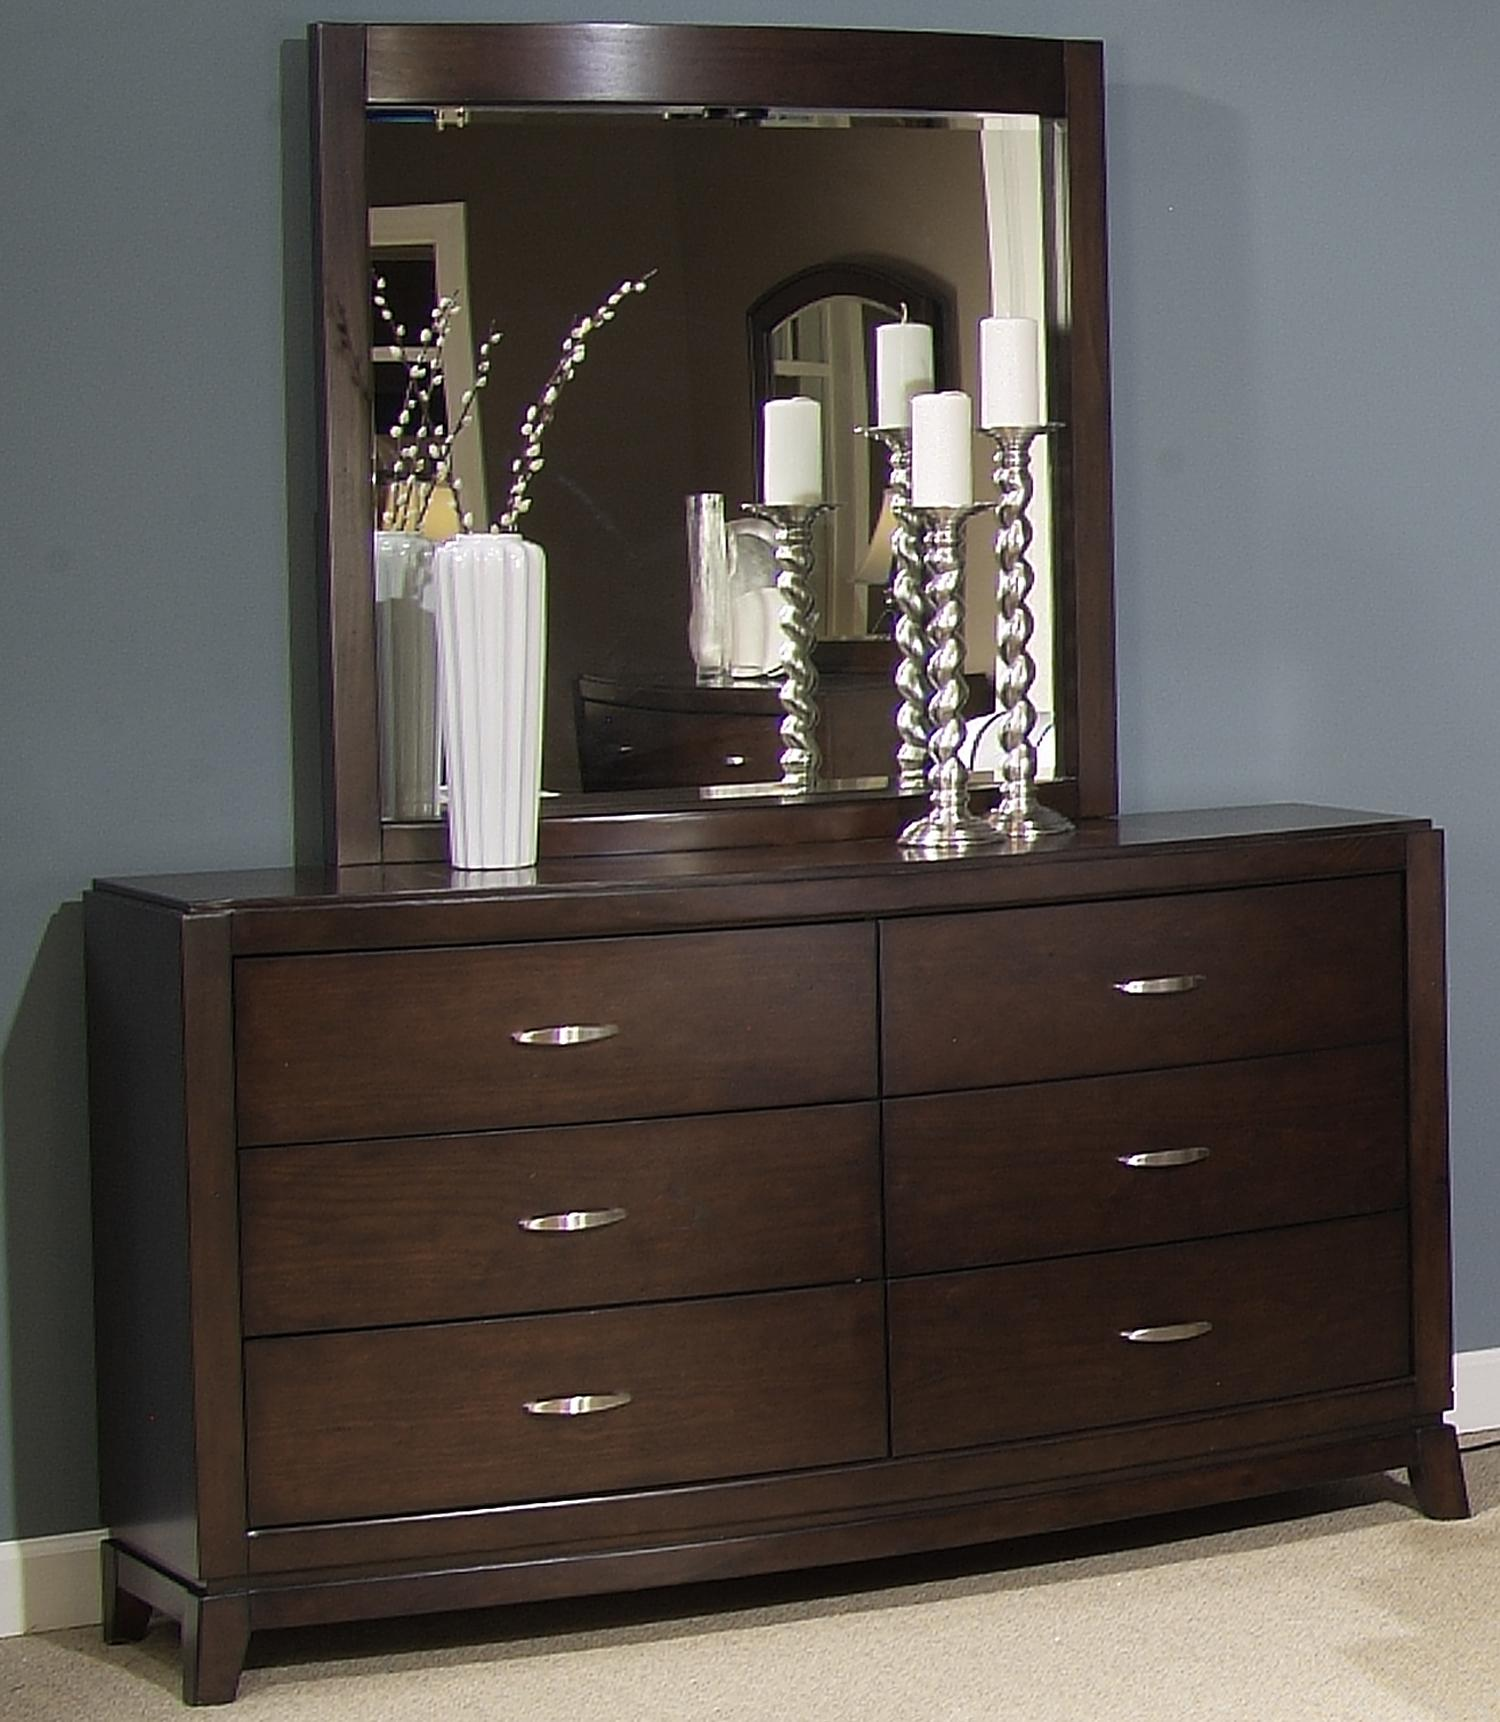 Avalon Dresser & Lighted Mirror by Libby at Walker's Furniture